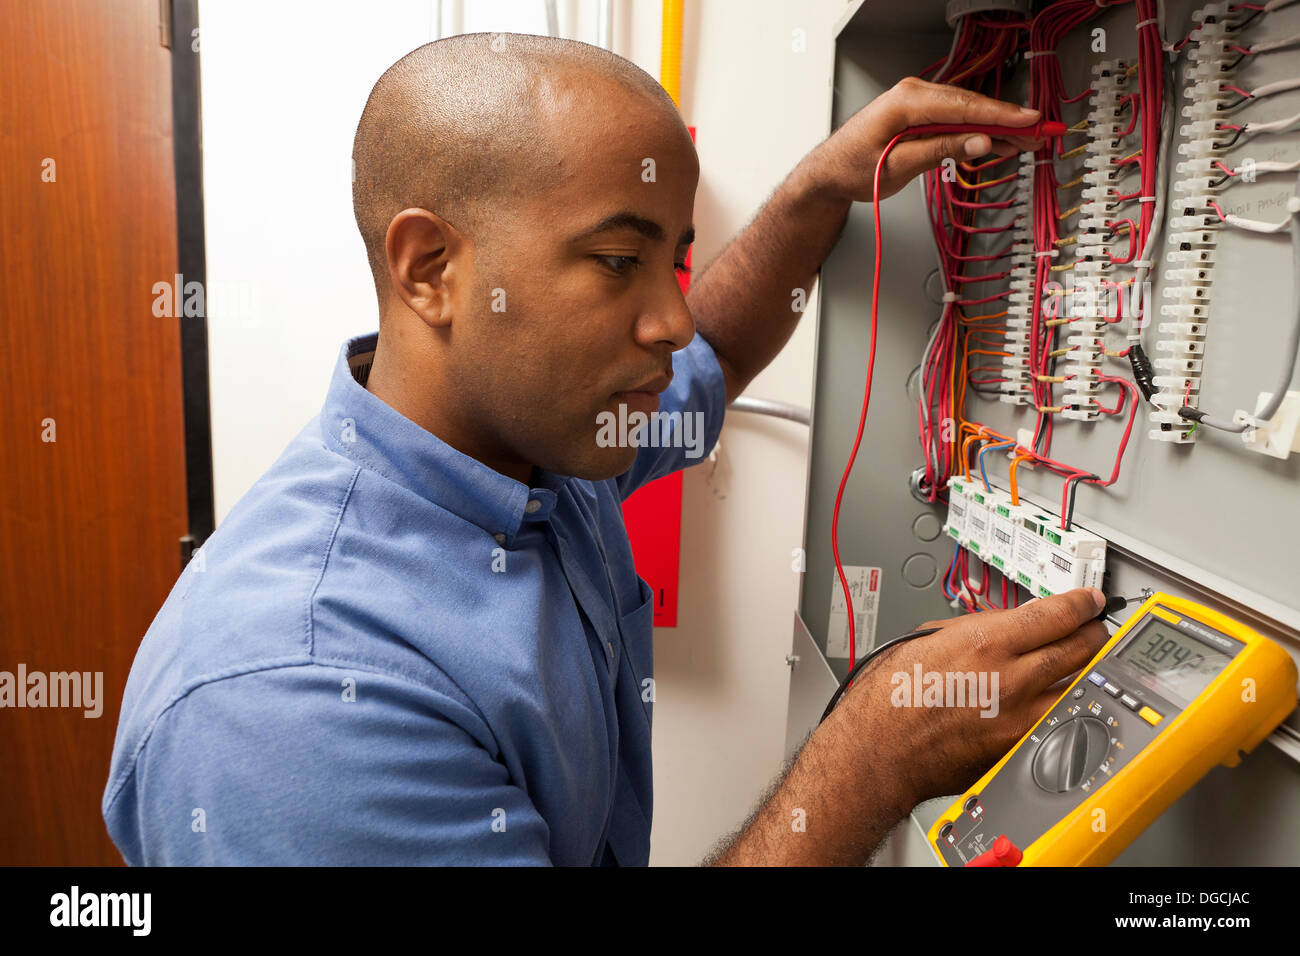 Mid adult electrical engineer working in manufacturing plant - Stock Image